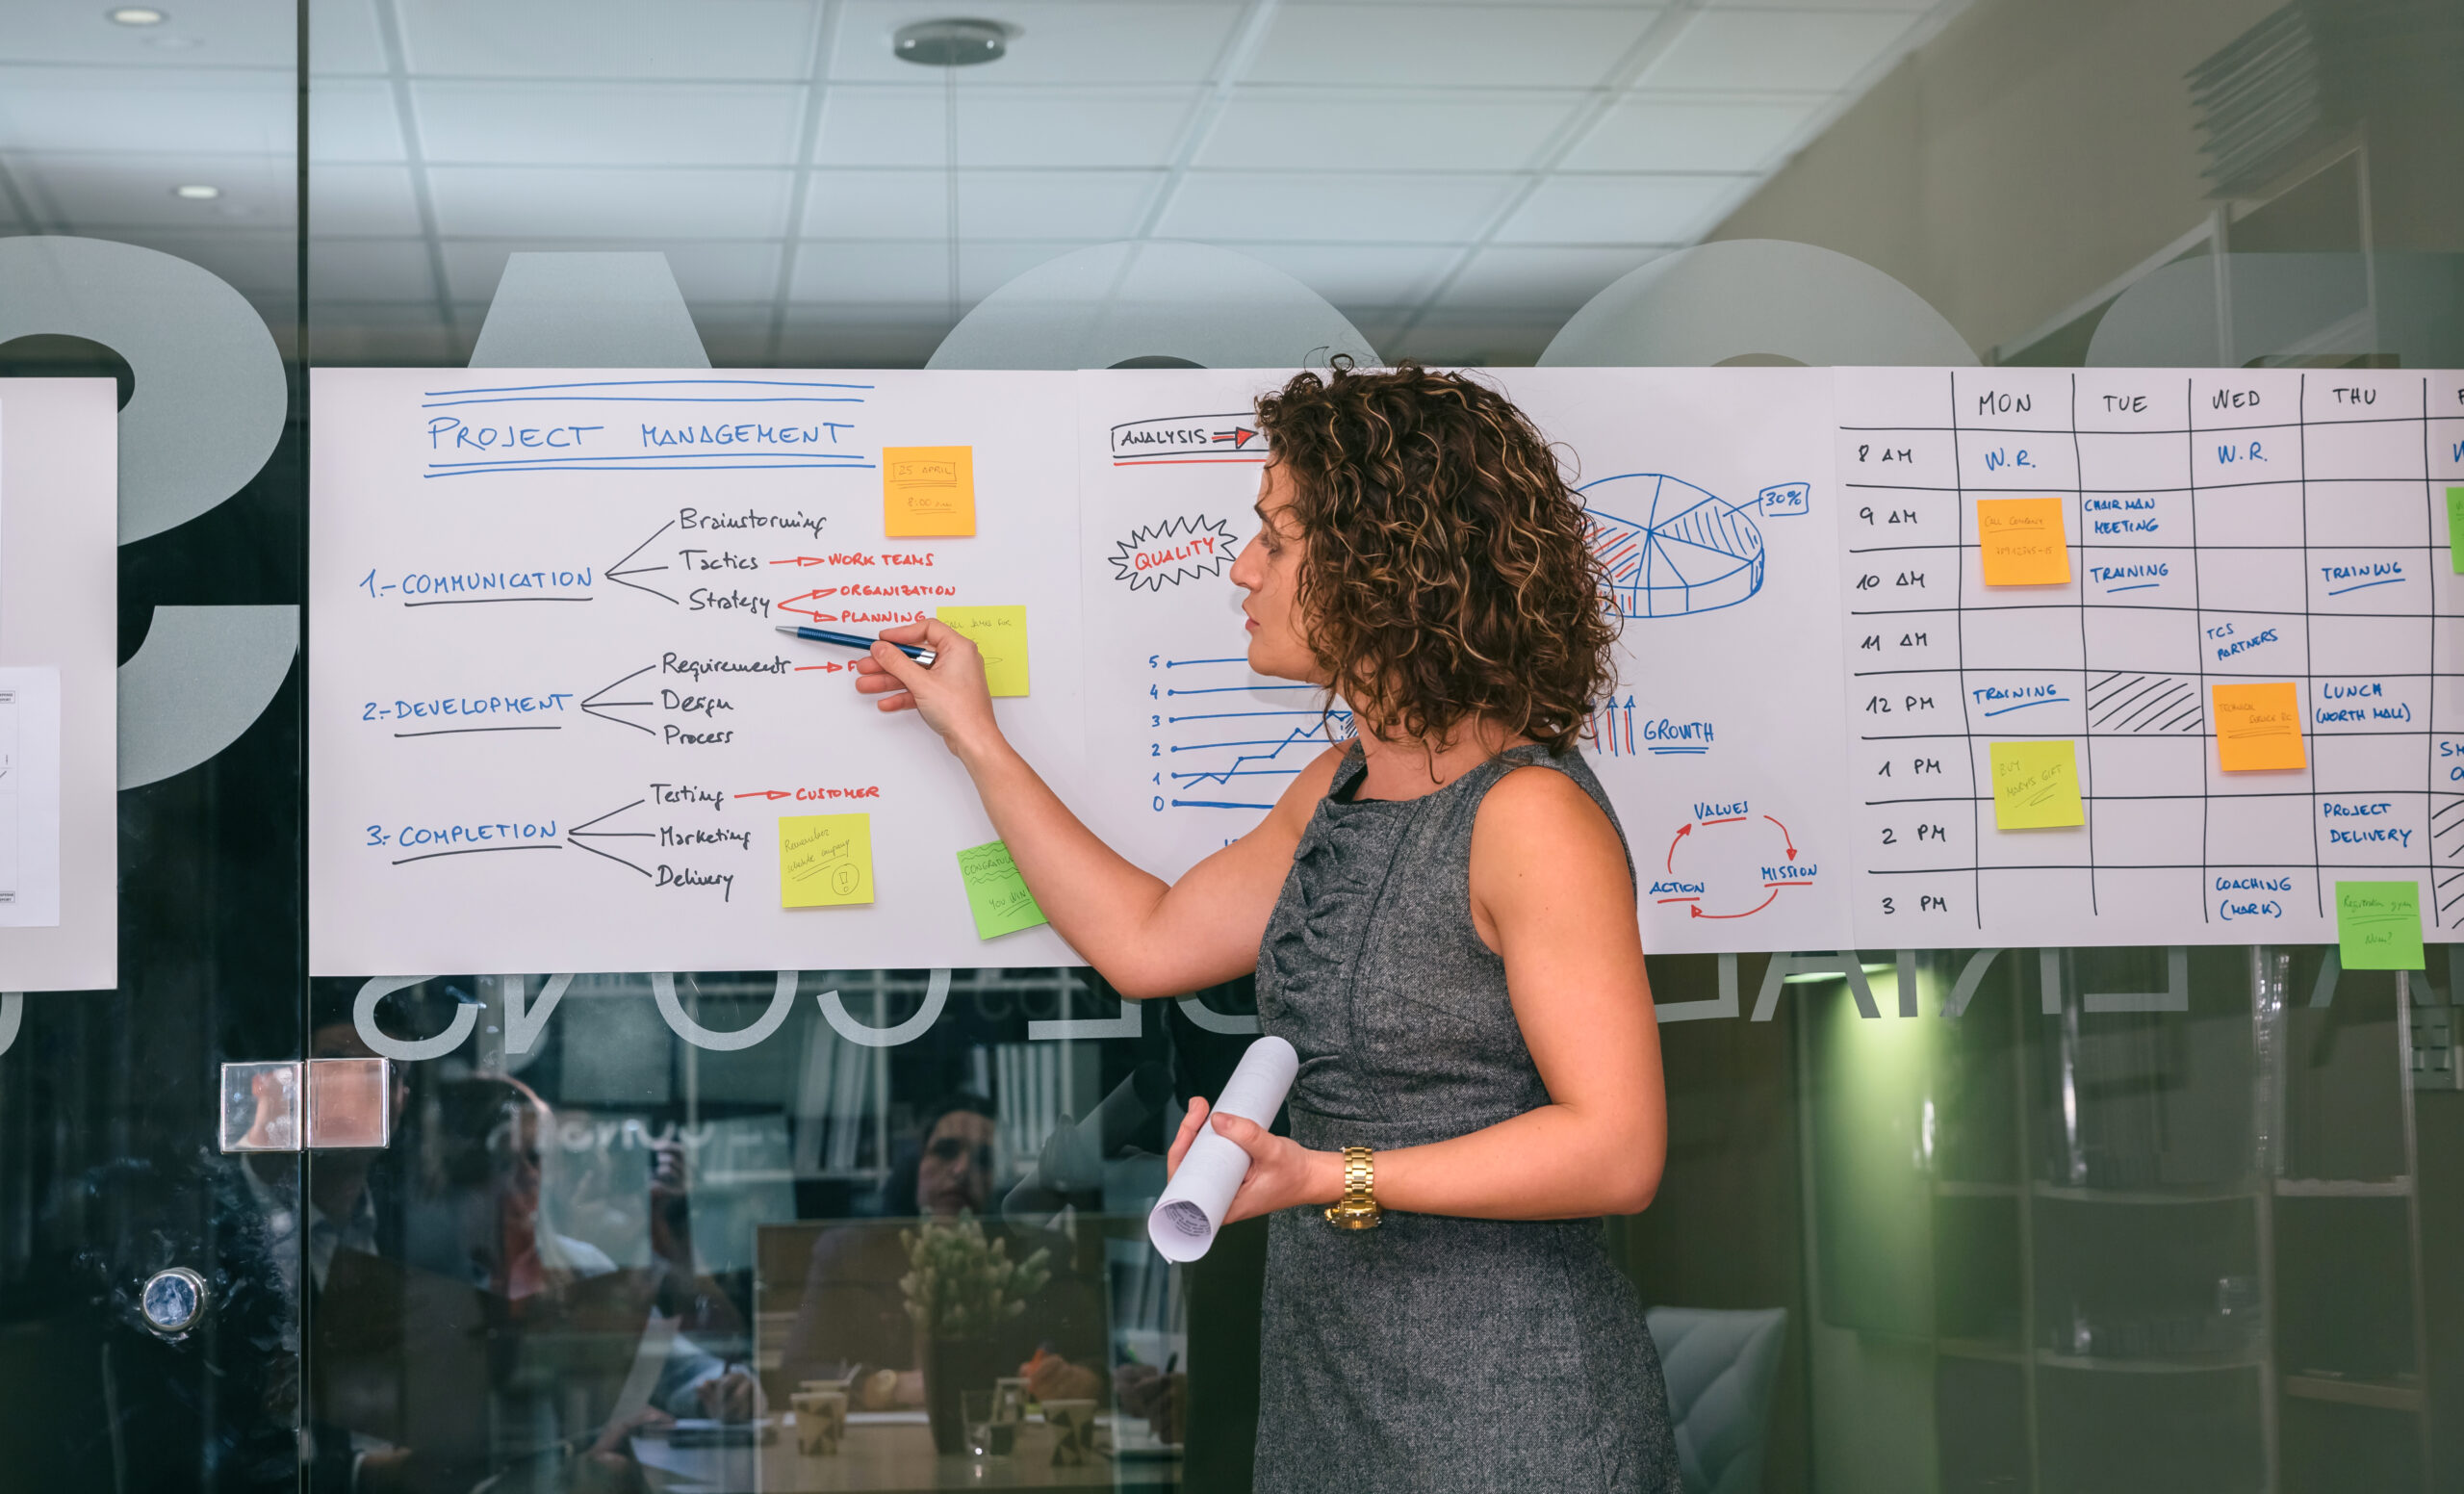 Portrait of female coach showing project management studies on paper over glass wall in headquarters